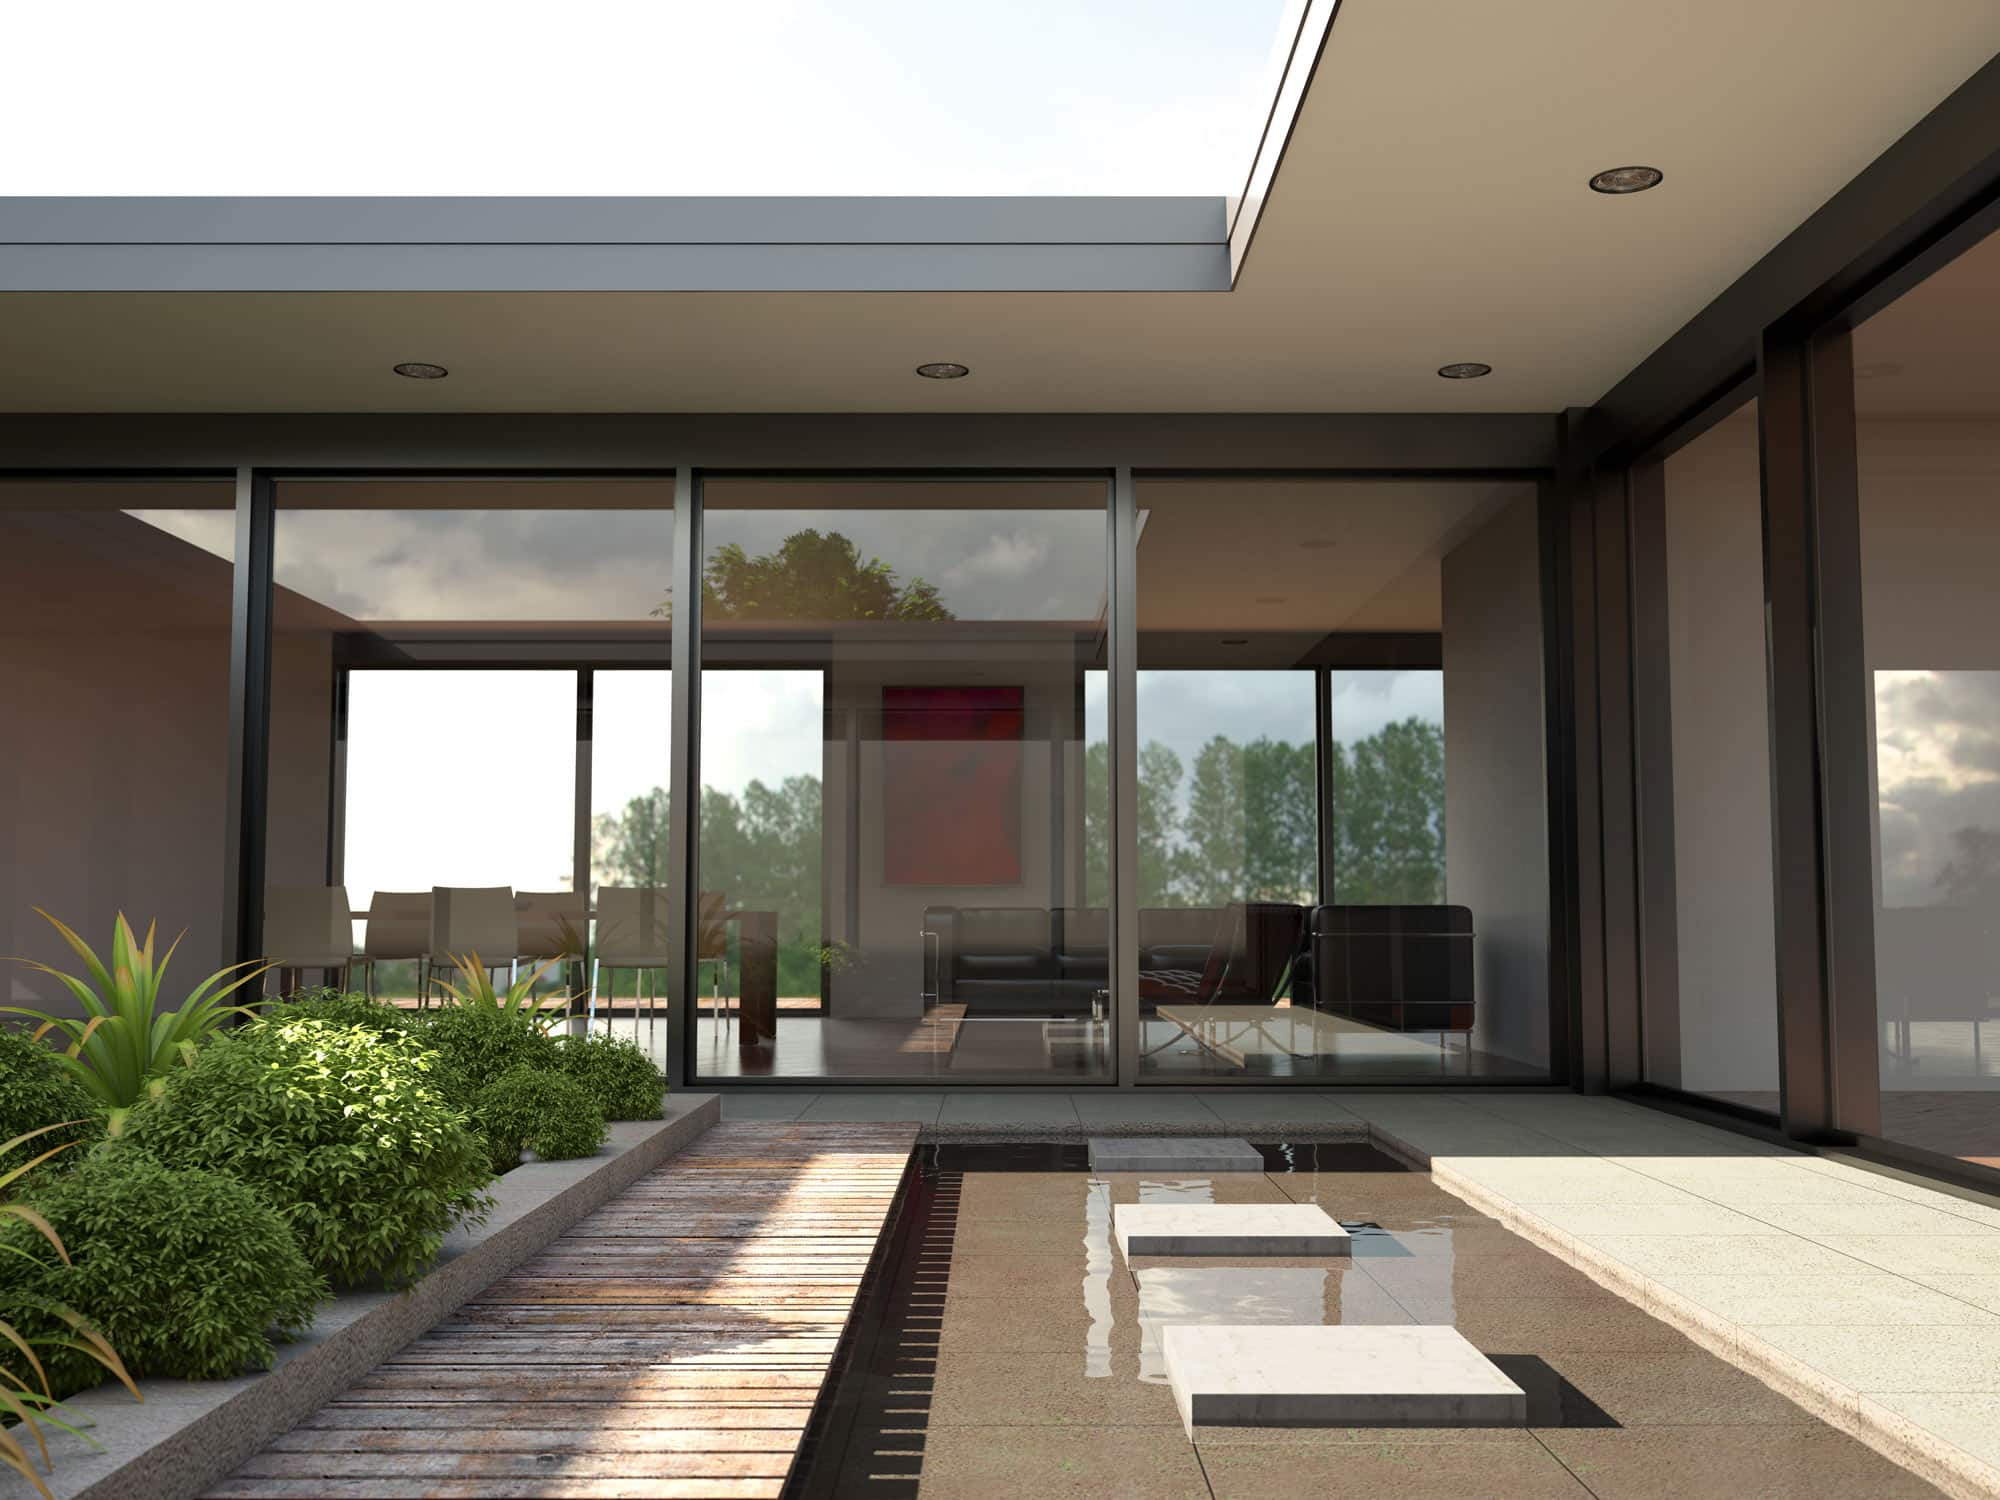 courtyard garden with shallow pool surrounded by bifold doors in modern building